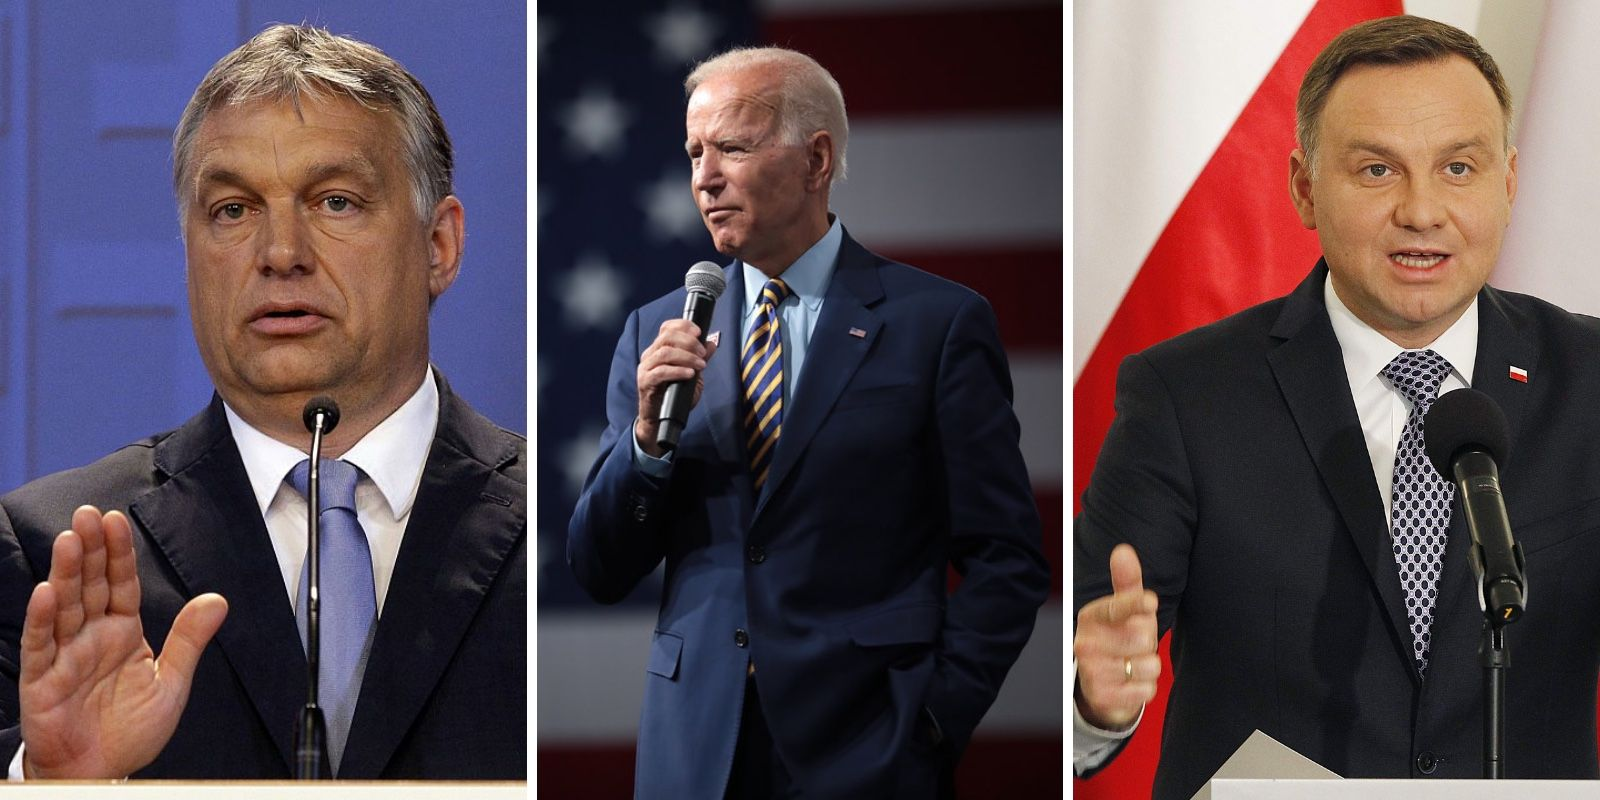 Joe Biden is dead wrong on Hungary and Poland